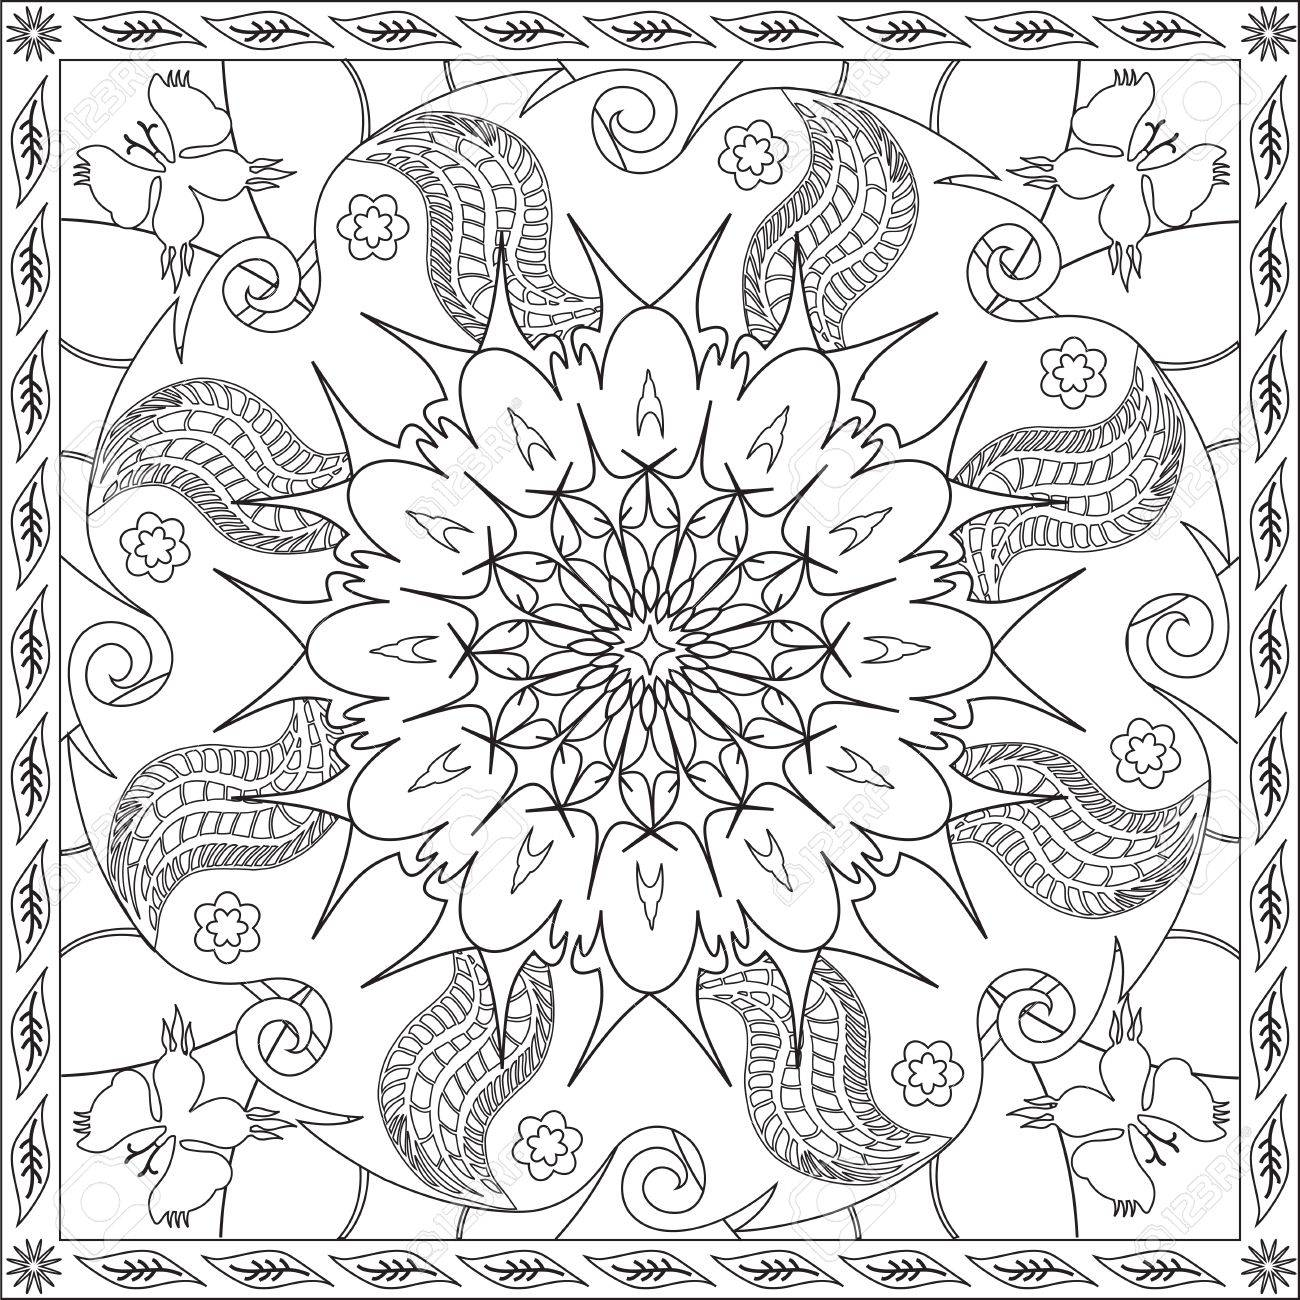 Page Coloring Book For Adults Square Format Flower Mandala Design Illustration Stock Vector